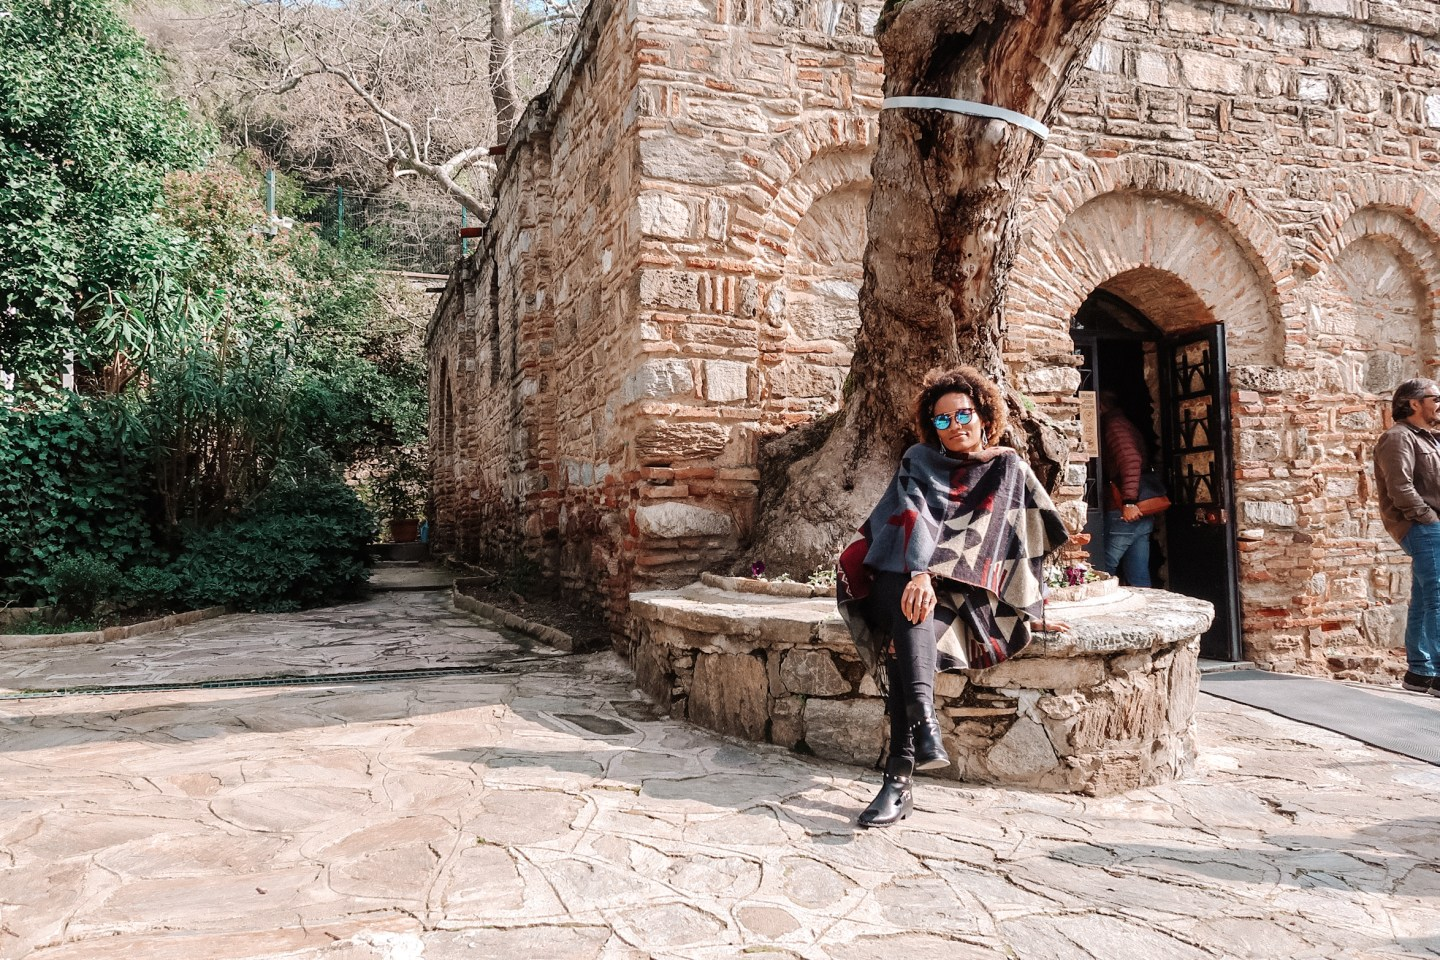 Illustrated by Sade - Sitting in front of the House of the Virgin Mary in Ephesus, Turkey